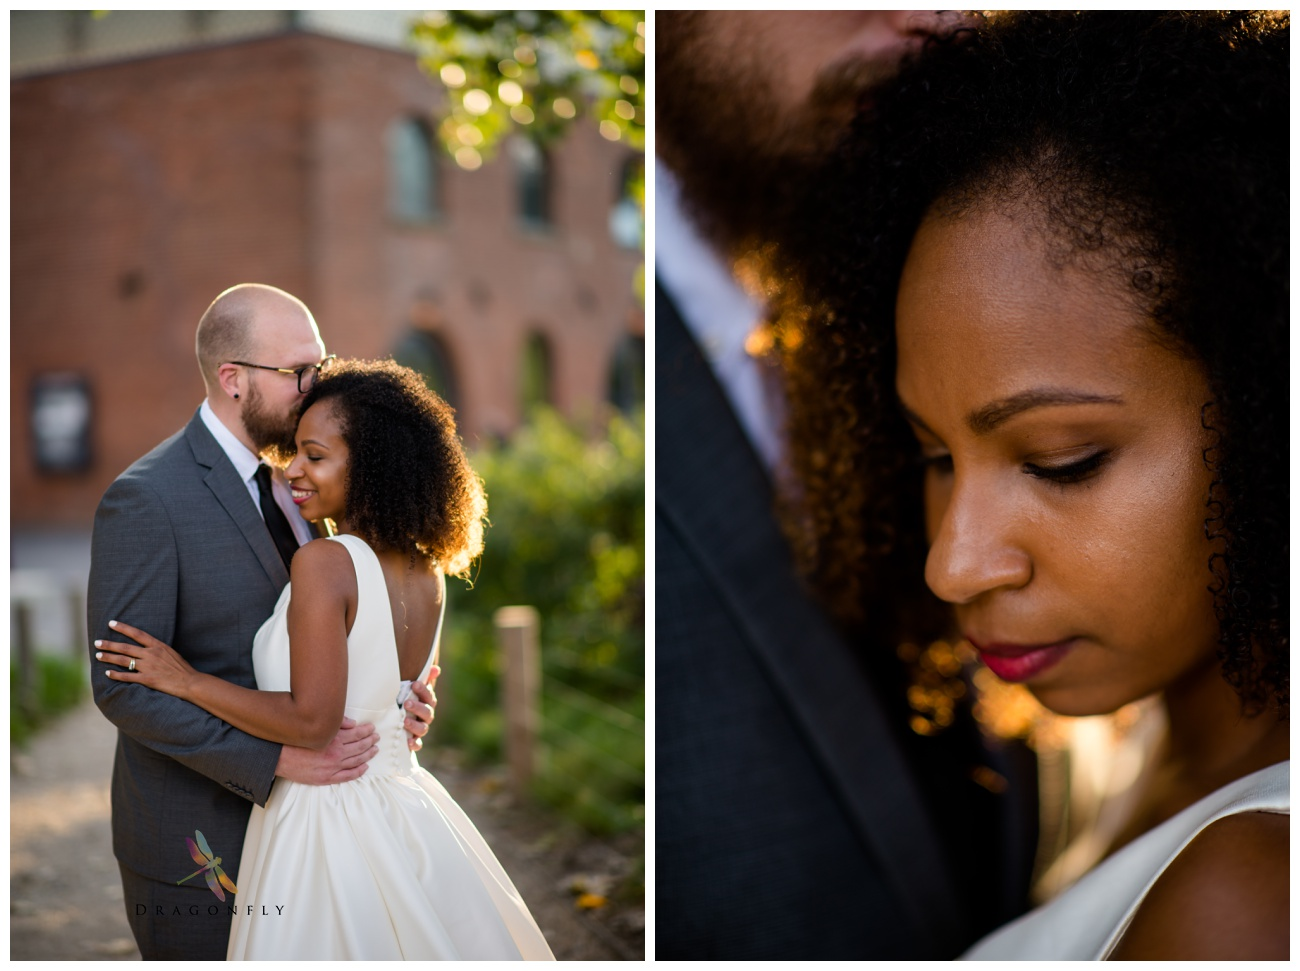 Dumbo Brooklyn New York Wedding Elopement Photo_0010.jpg